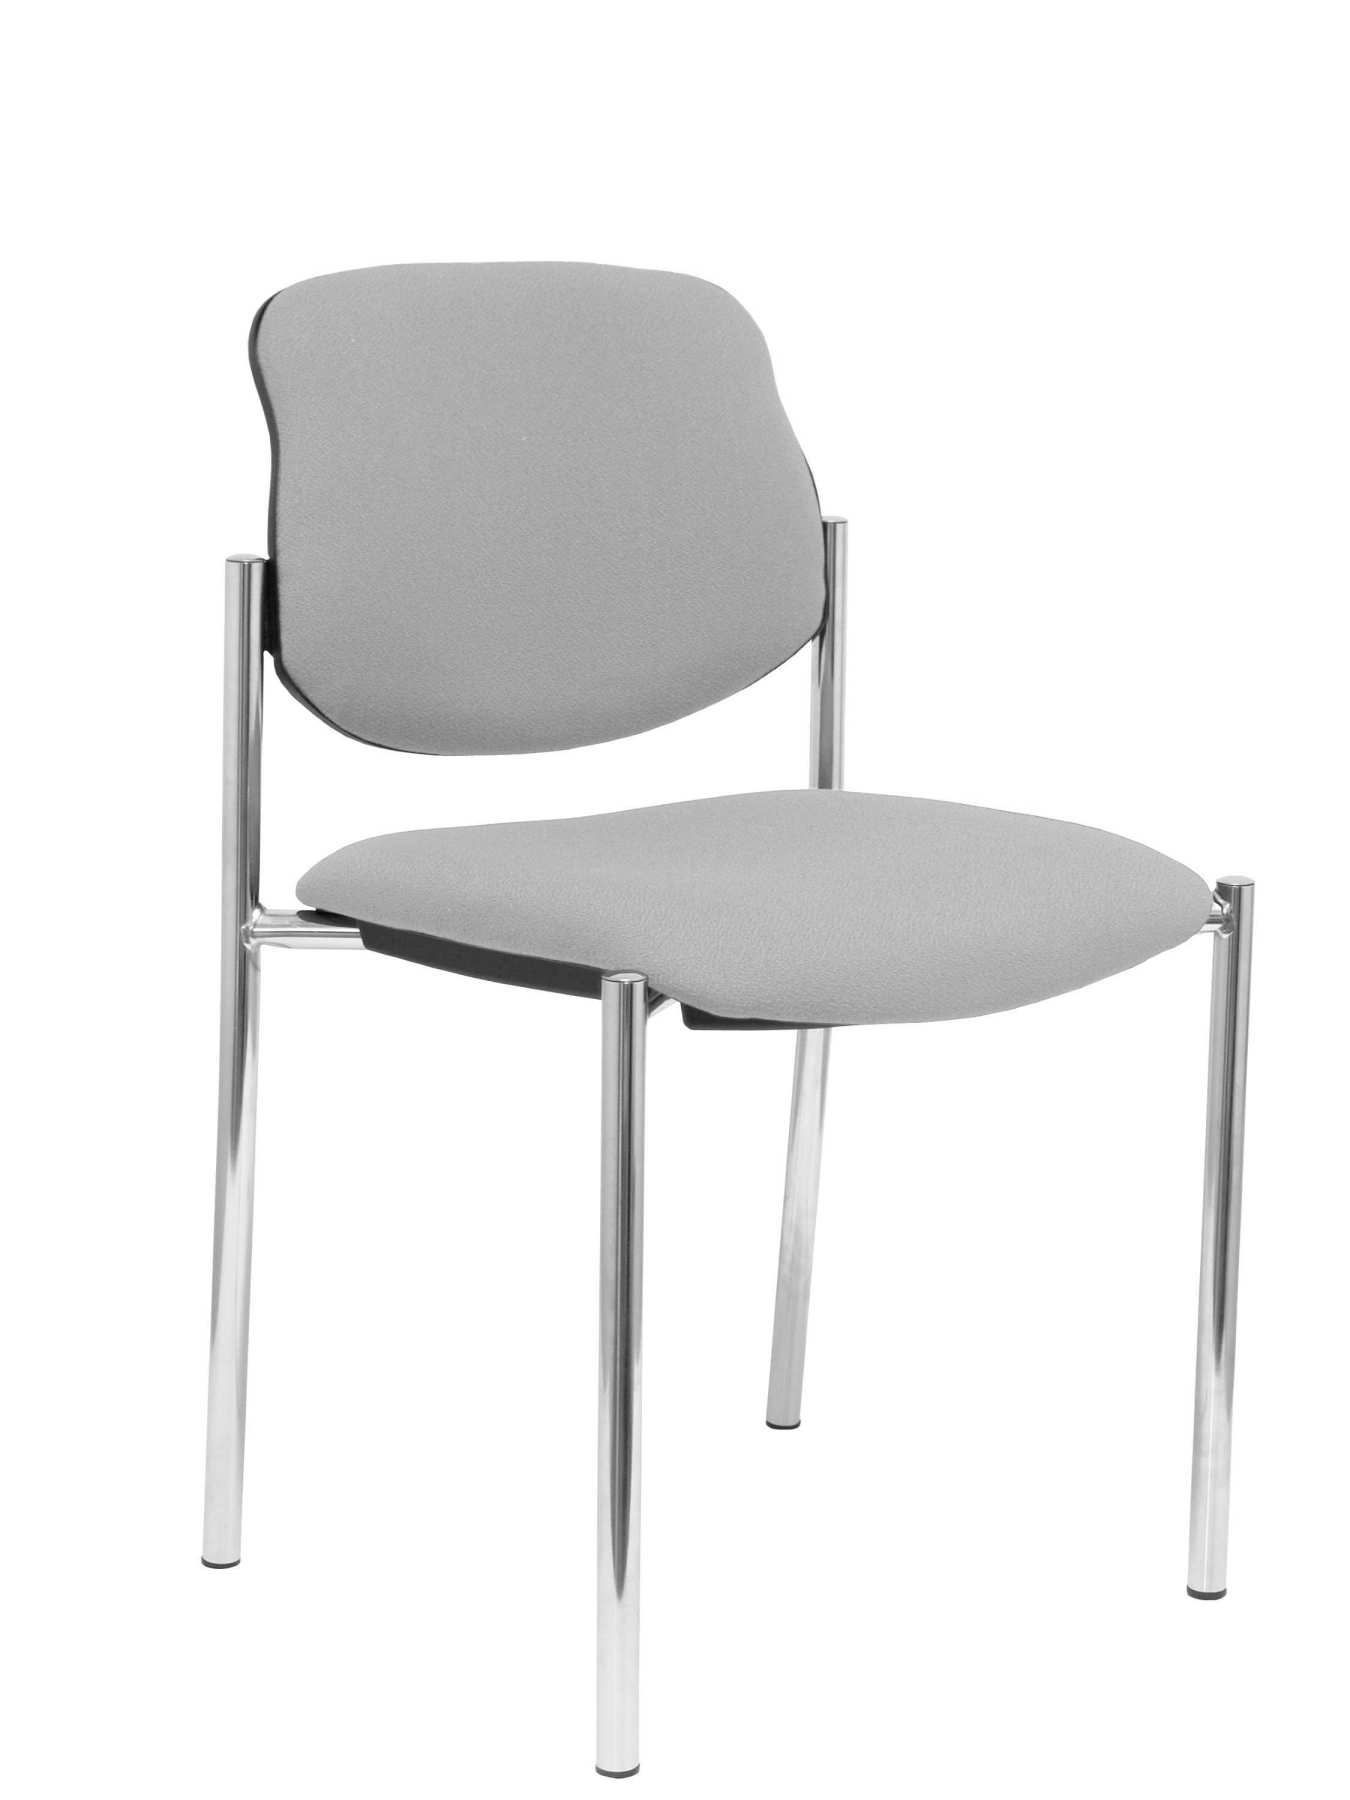 Confident Chair 4-leg And Estructrua Chrome Seat And Back Upholstered In Fabric BALI Gray PIQUERAS And CRE